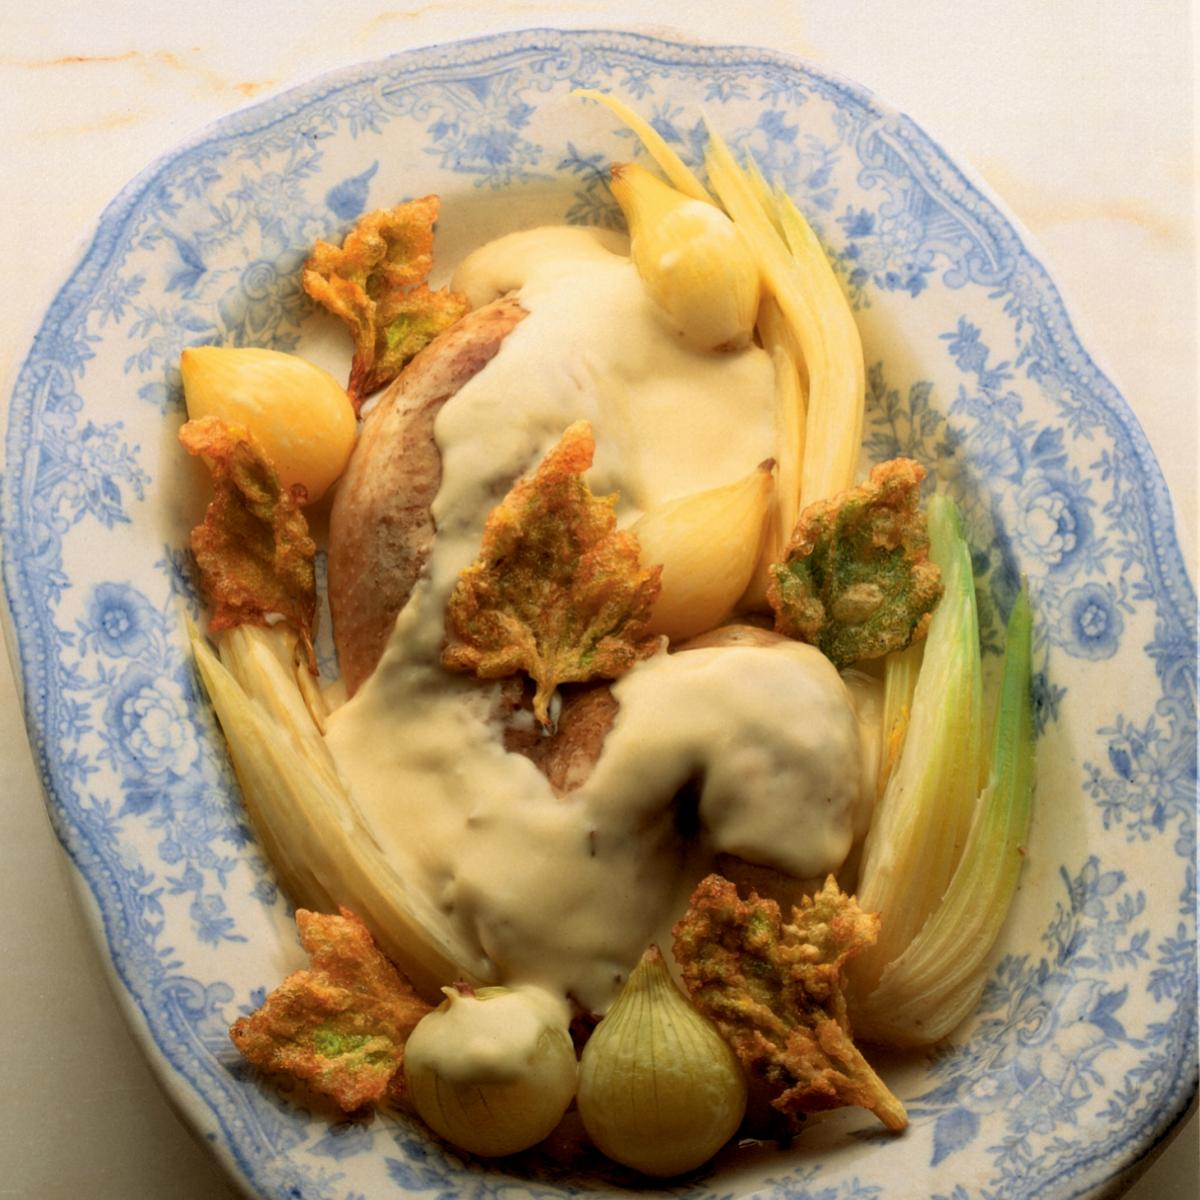 A picture of Delia's Poached Pheasant with Celery recipe